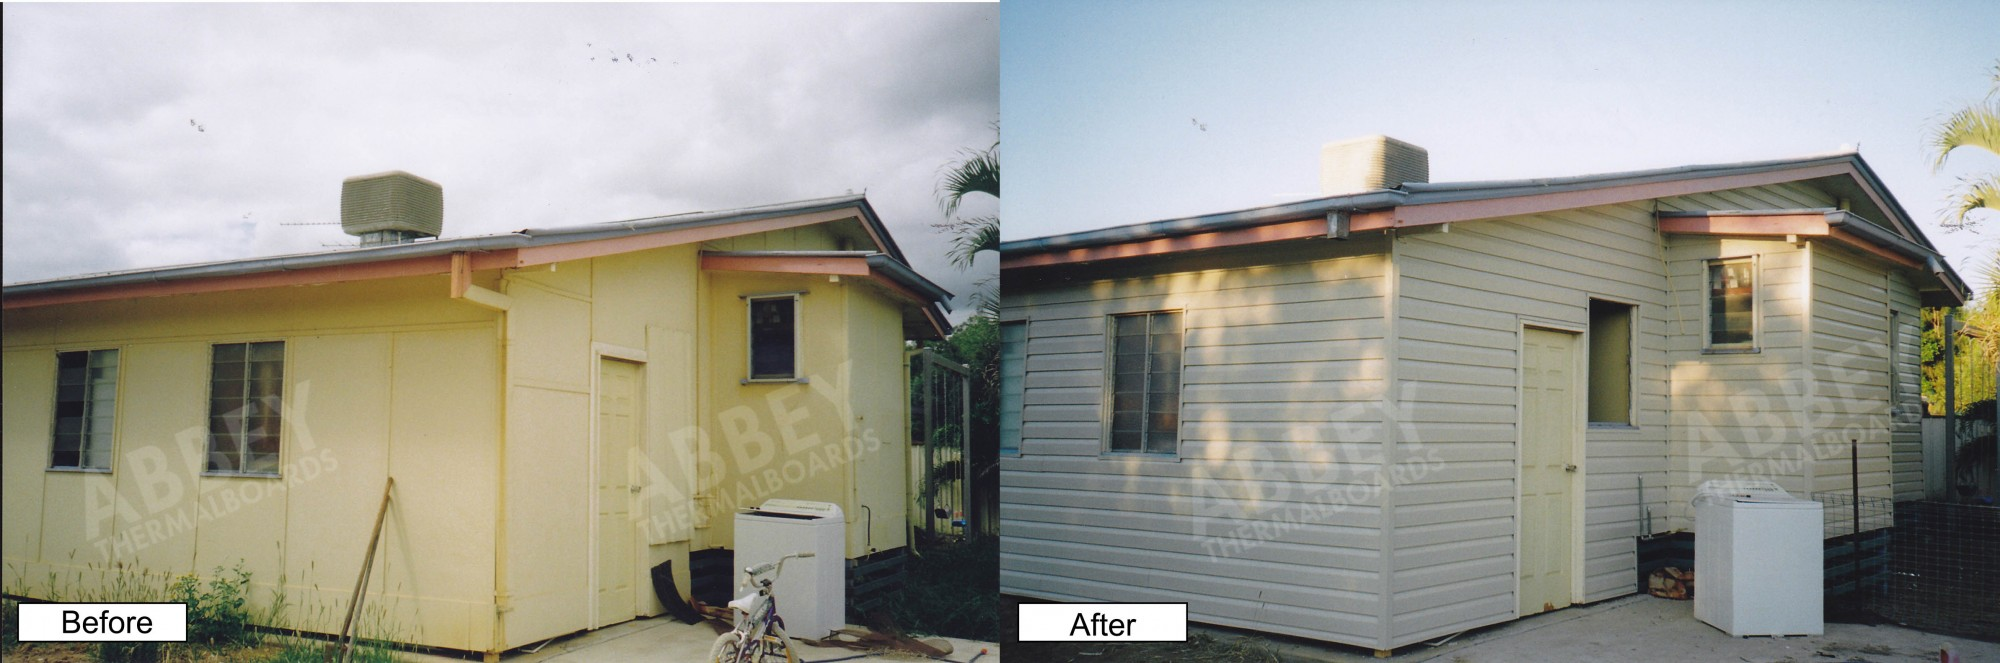 The before and after picture of a house Abbey cladded.